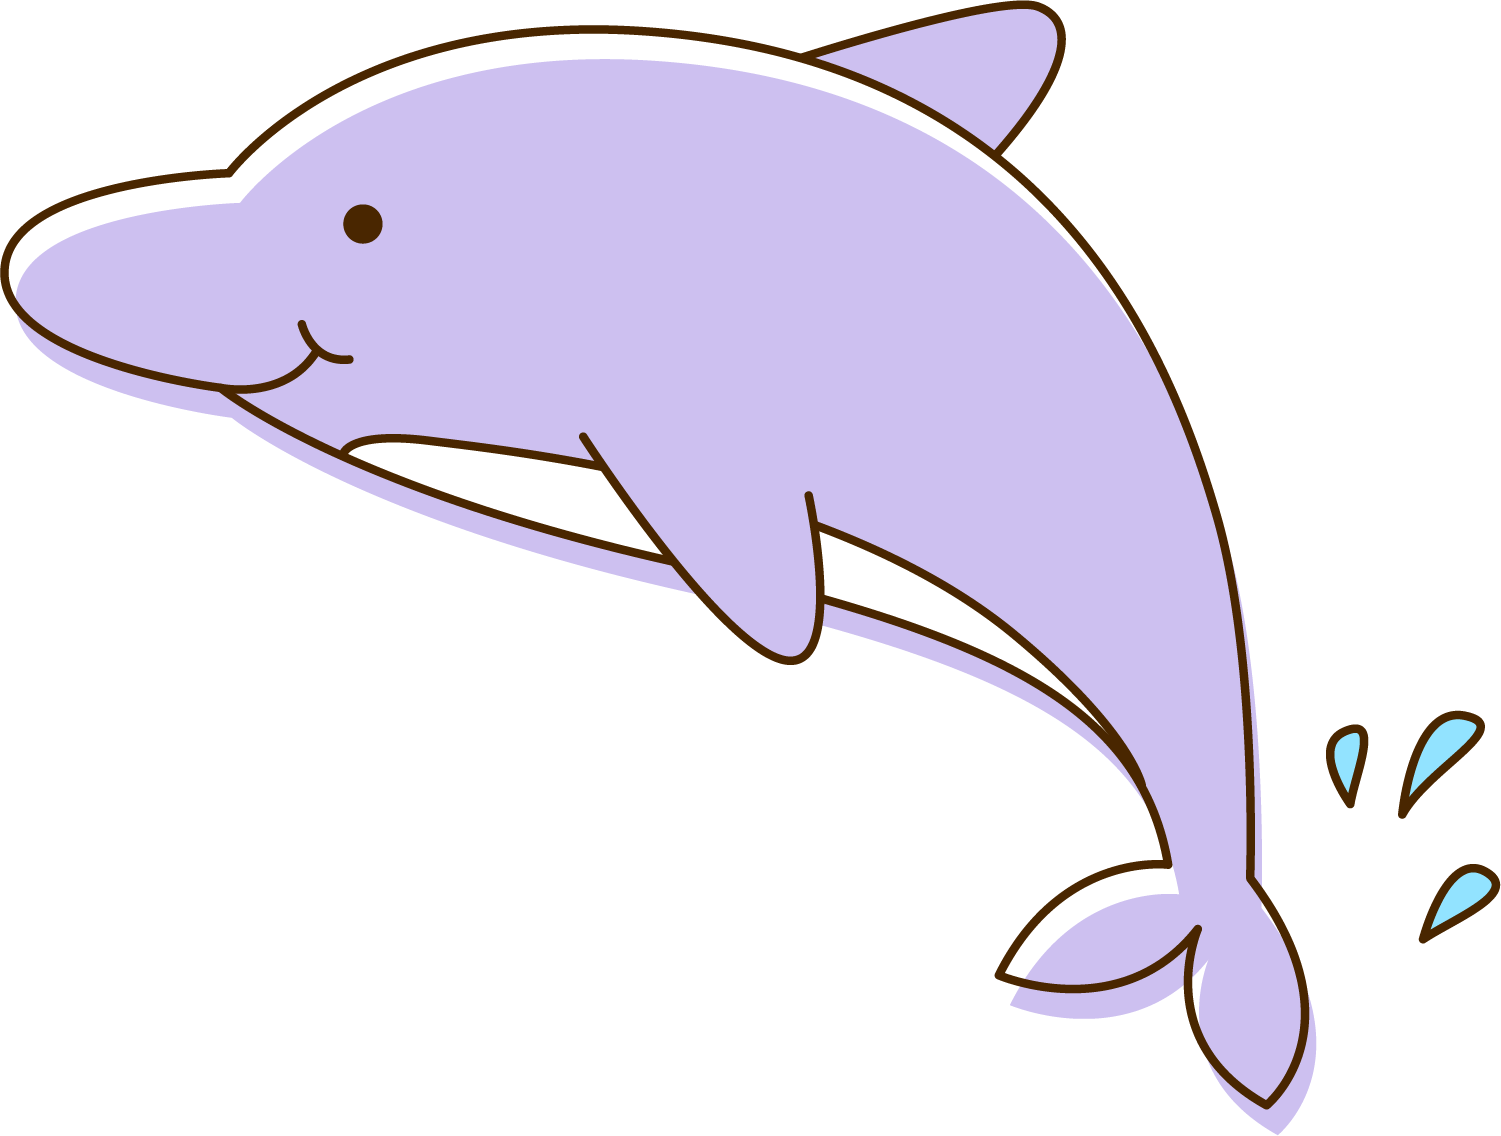 Shark With Mouth Open Drawing | Free download on ClipArtMag